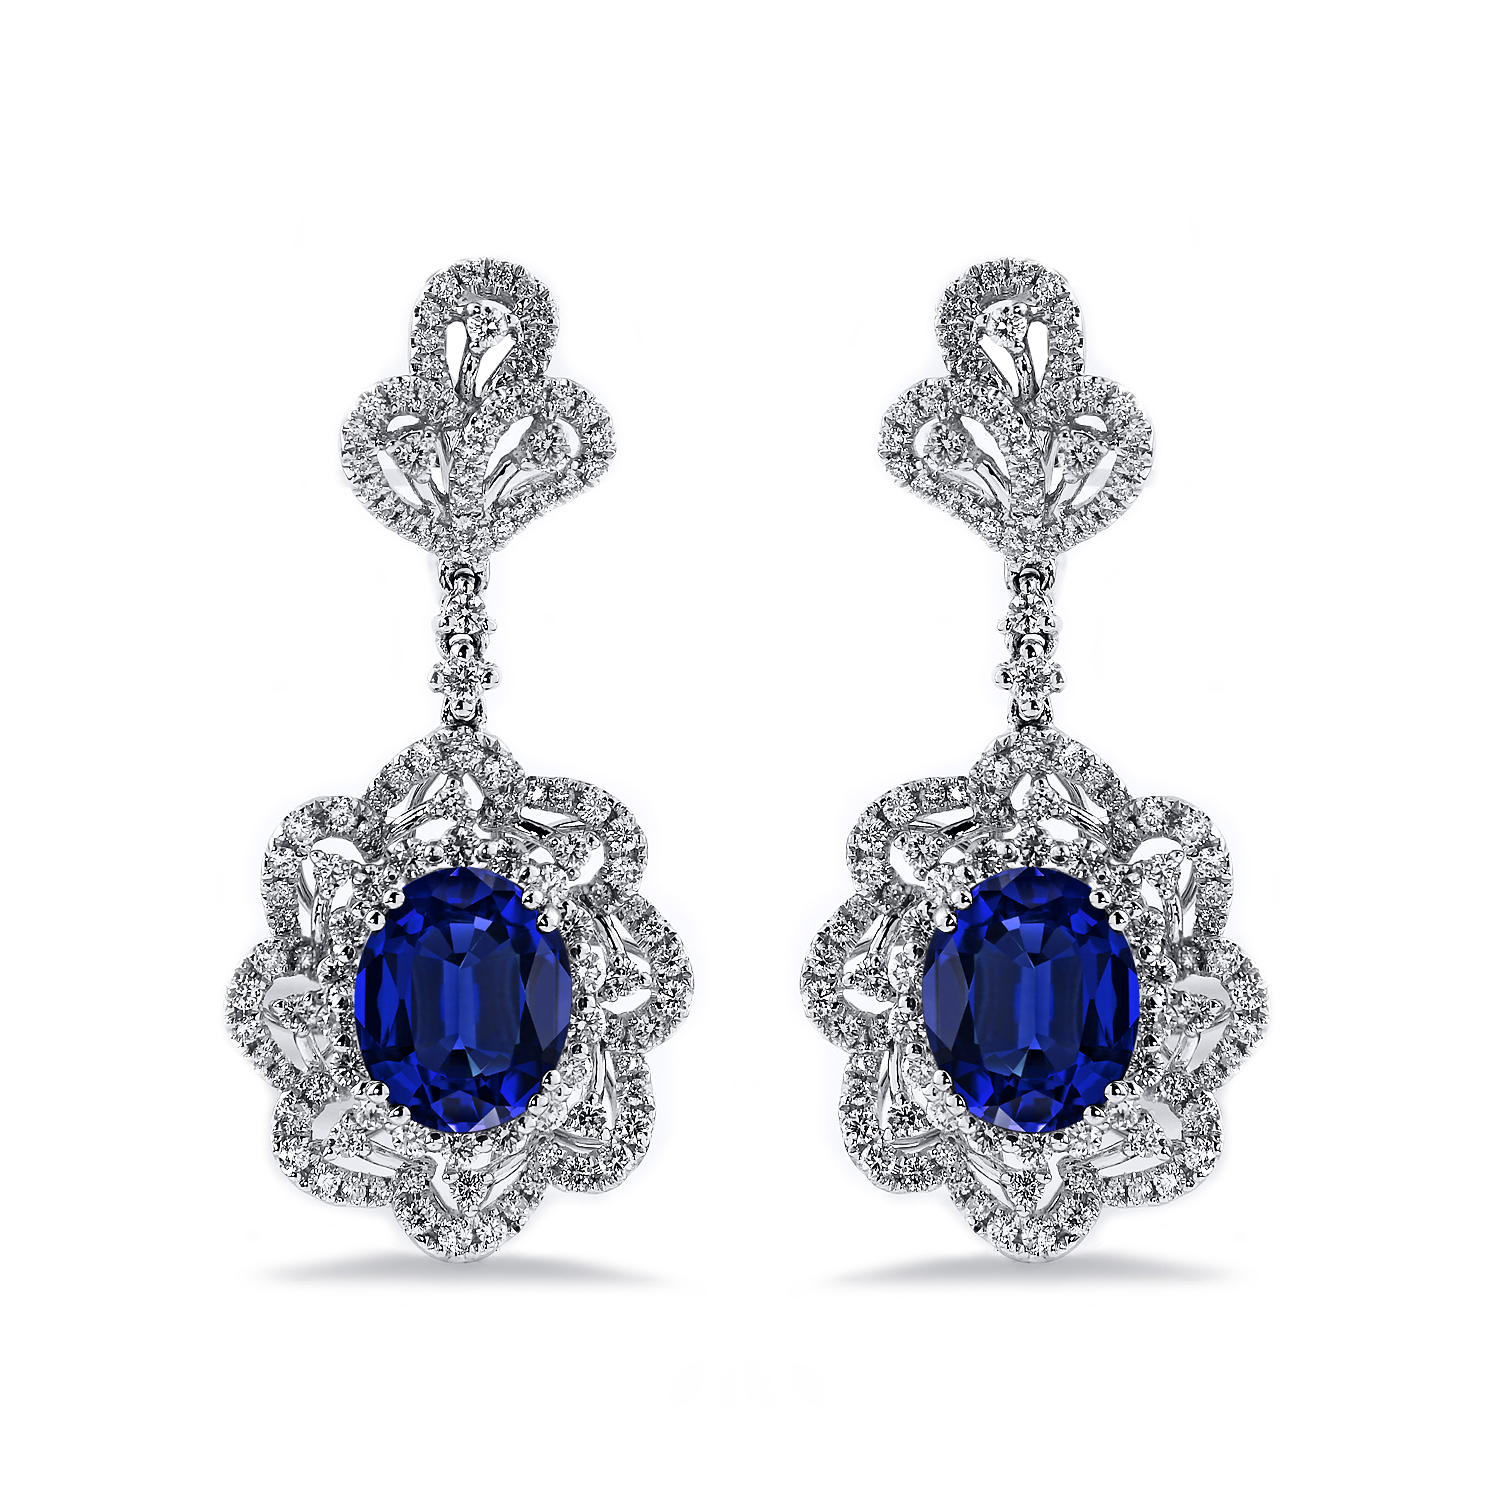 18K White Gold Halo Diamond Drop Earrings with 8 1/5 cttw Oval Blue Sapphire and 2 cttw Diamonds IGI Certified